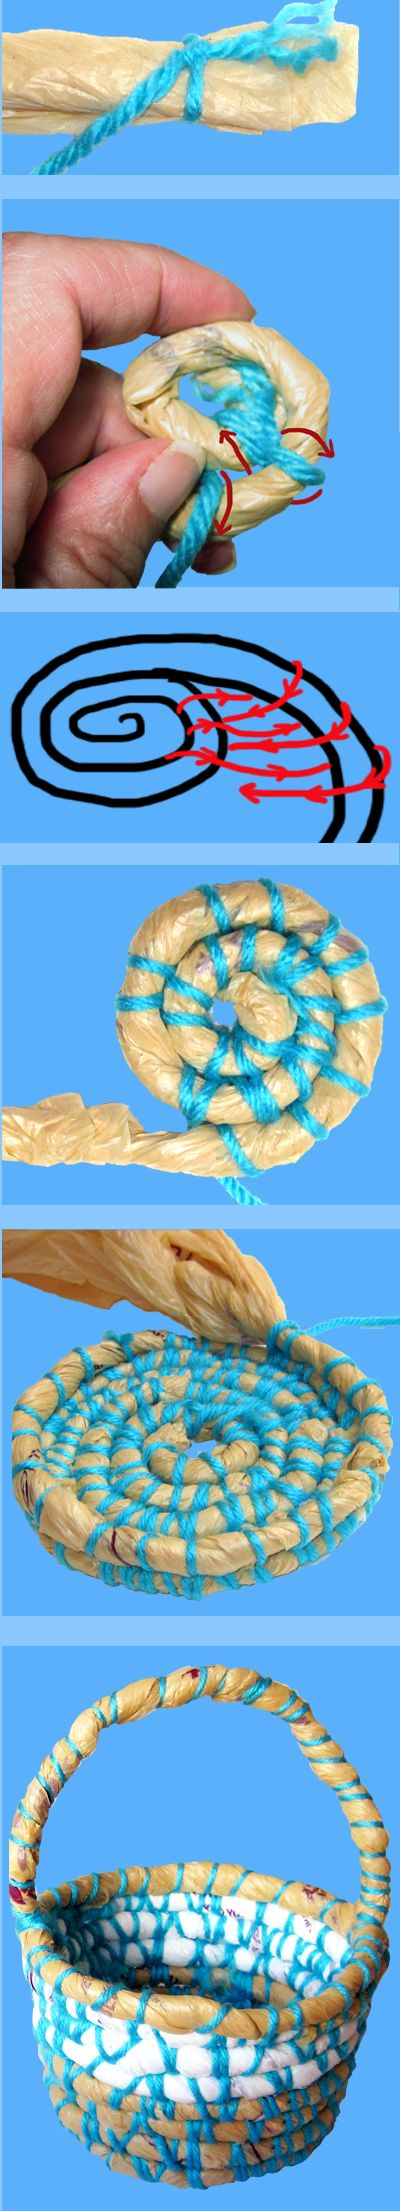 How To Make A Basket Out Of Recycled Plastic Bags   This is a cool idea!!!!!